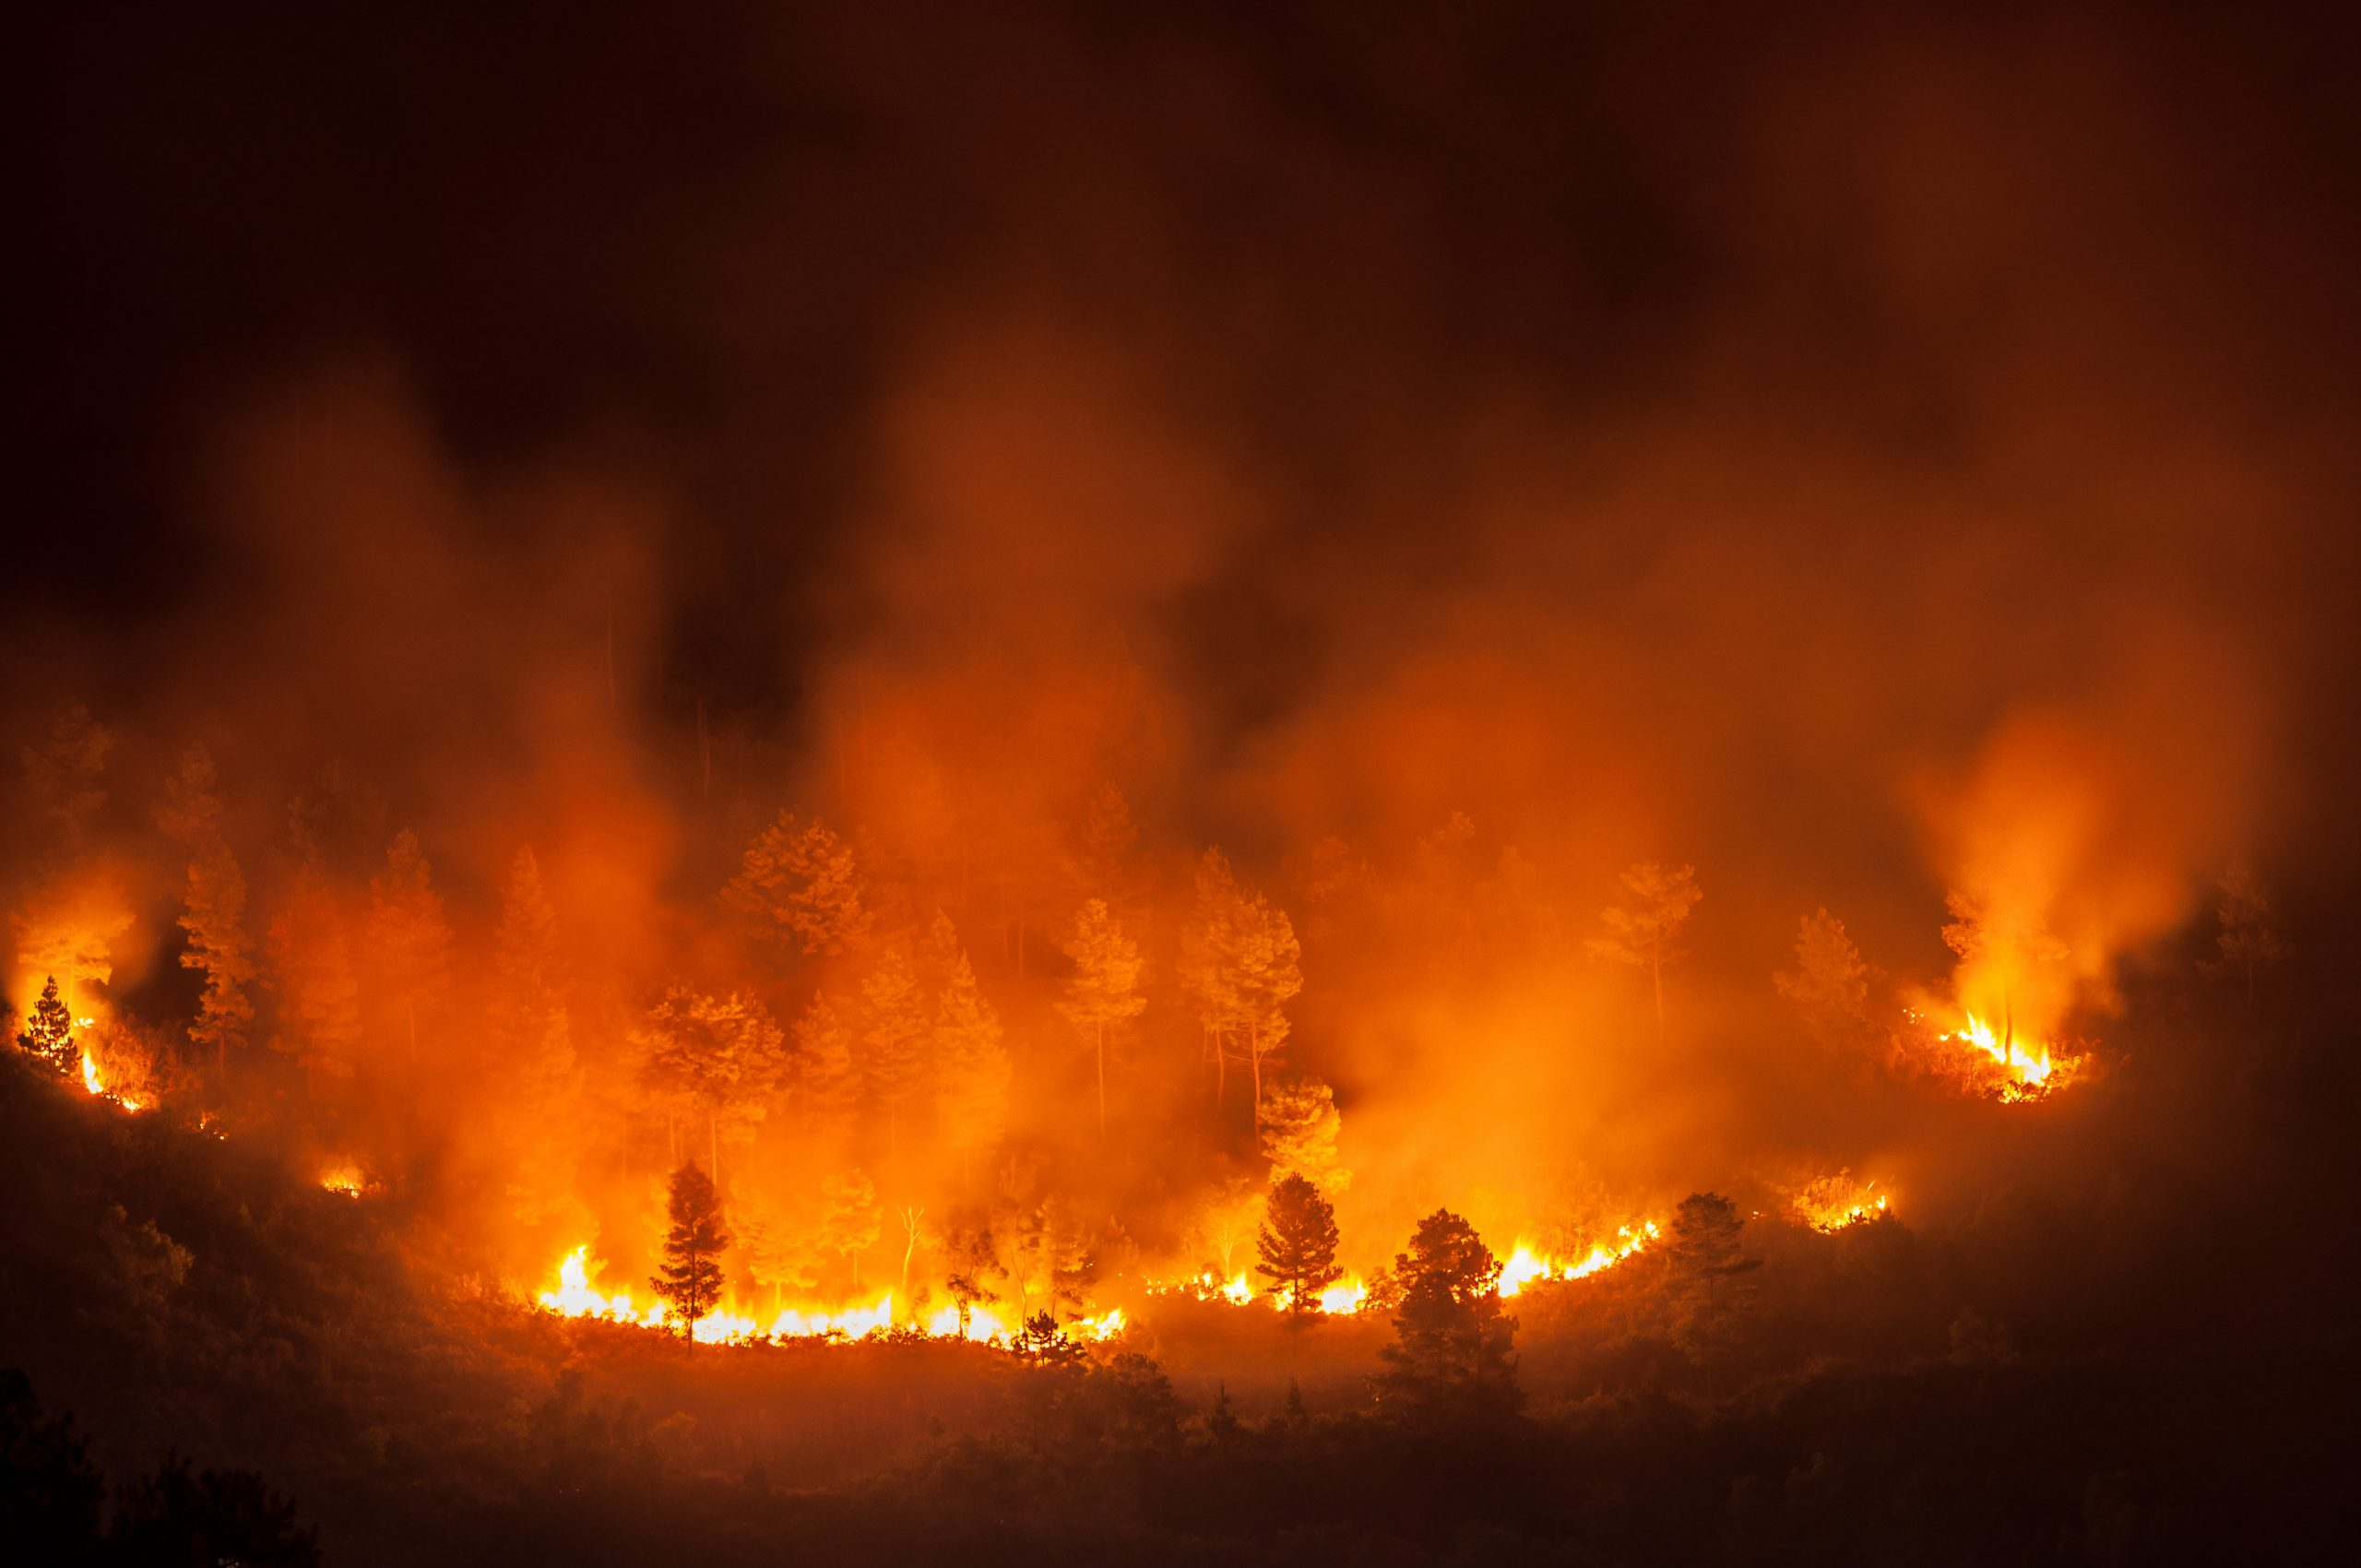 How COVID-19 will affect this year's wildfire season